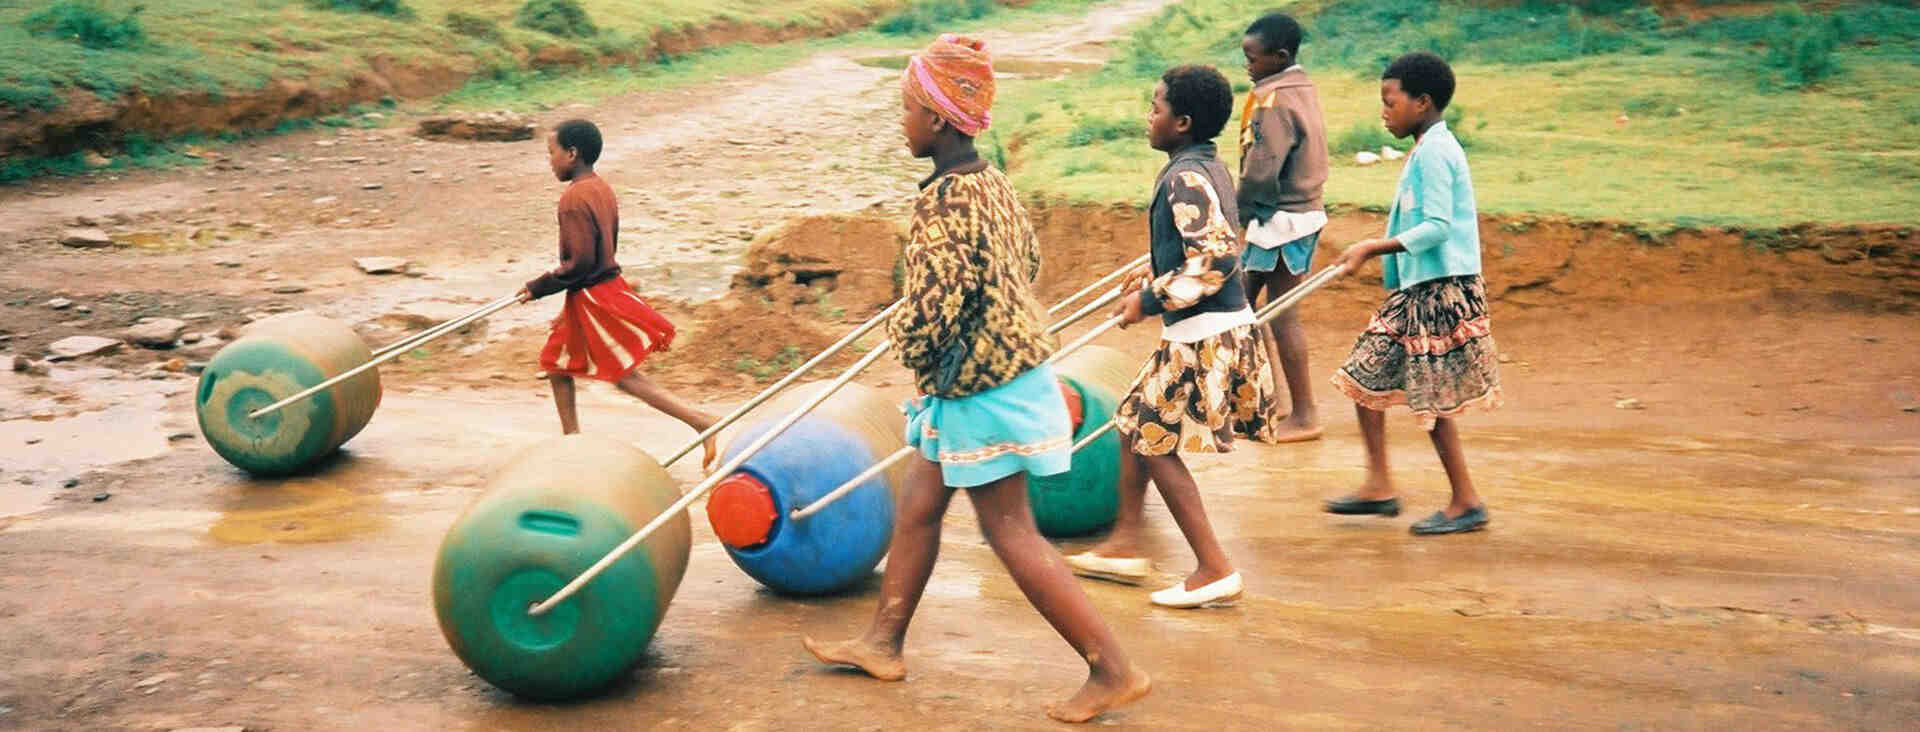 Hippo Roller used by kids in rural areas